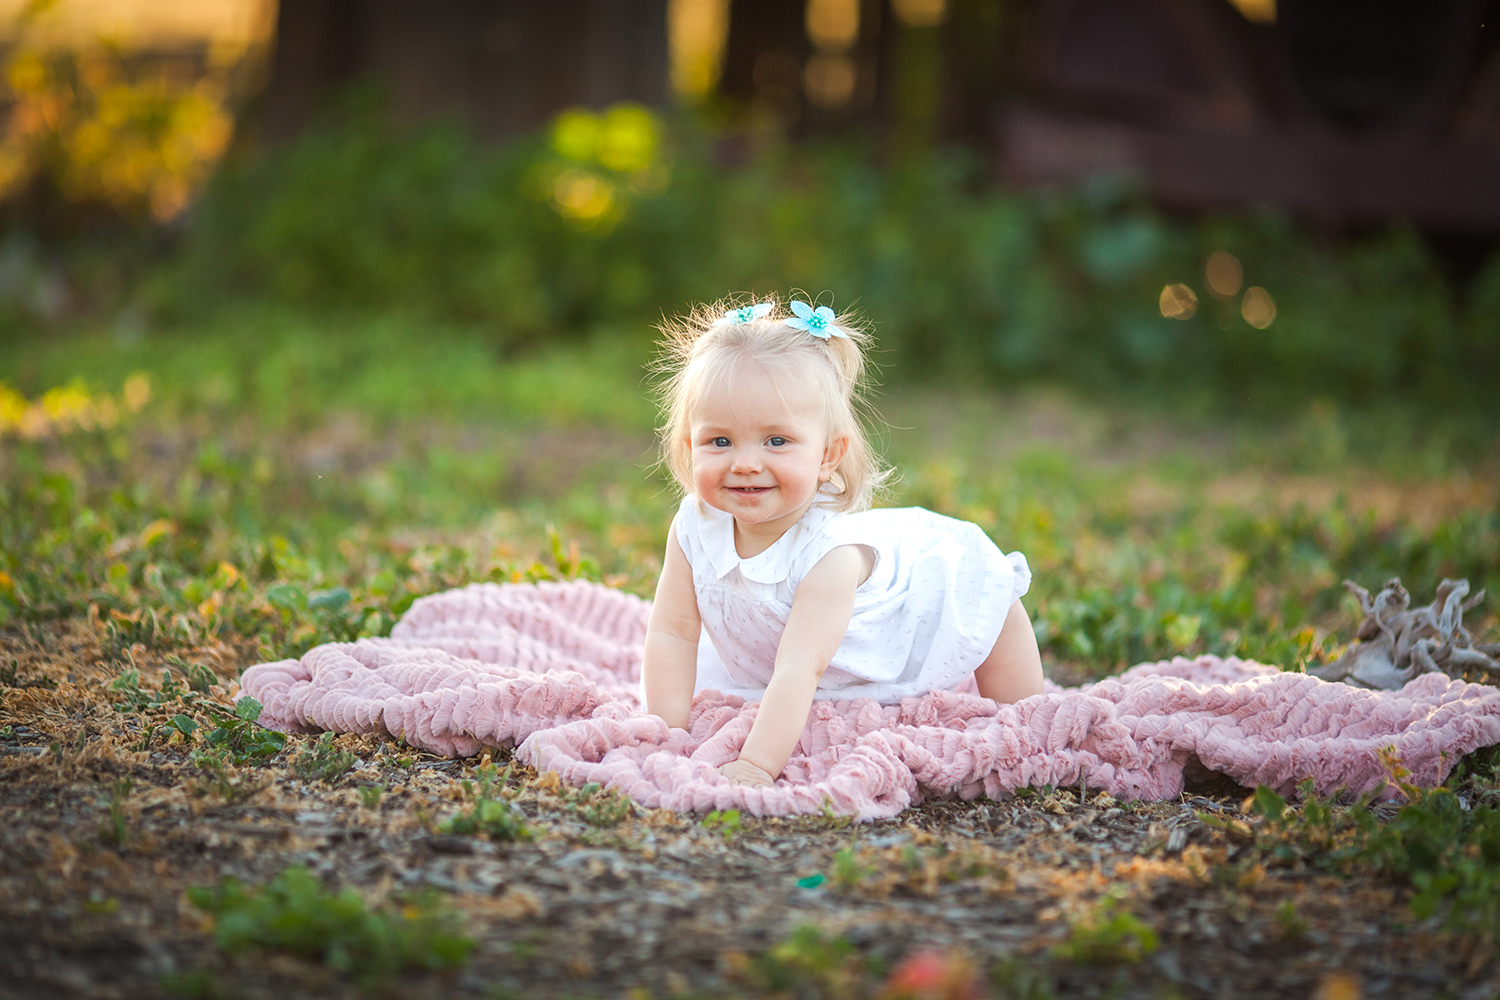 Dena_Rooney_baby photographer_0021.jpg